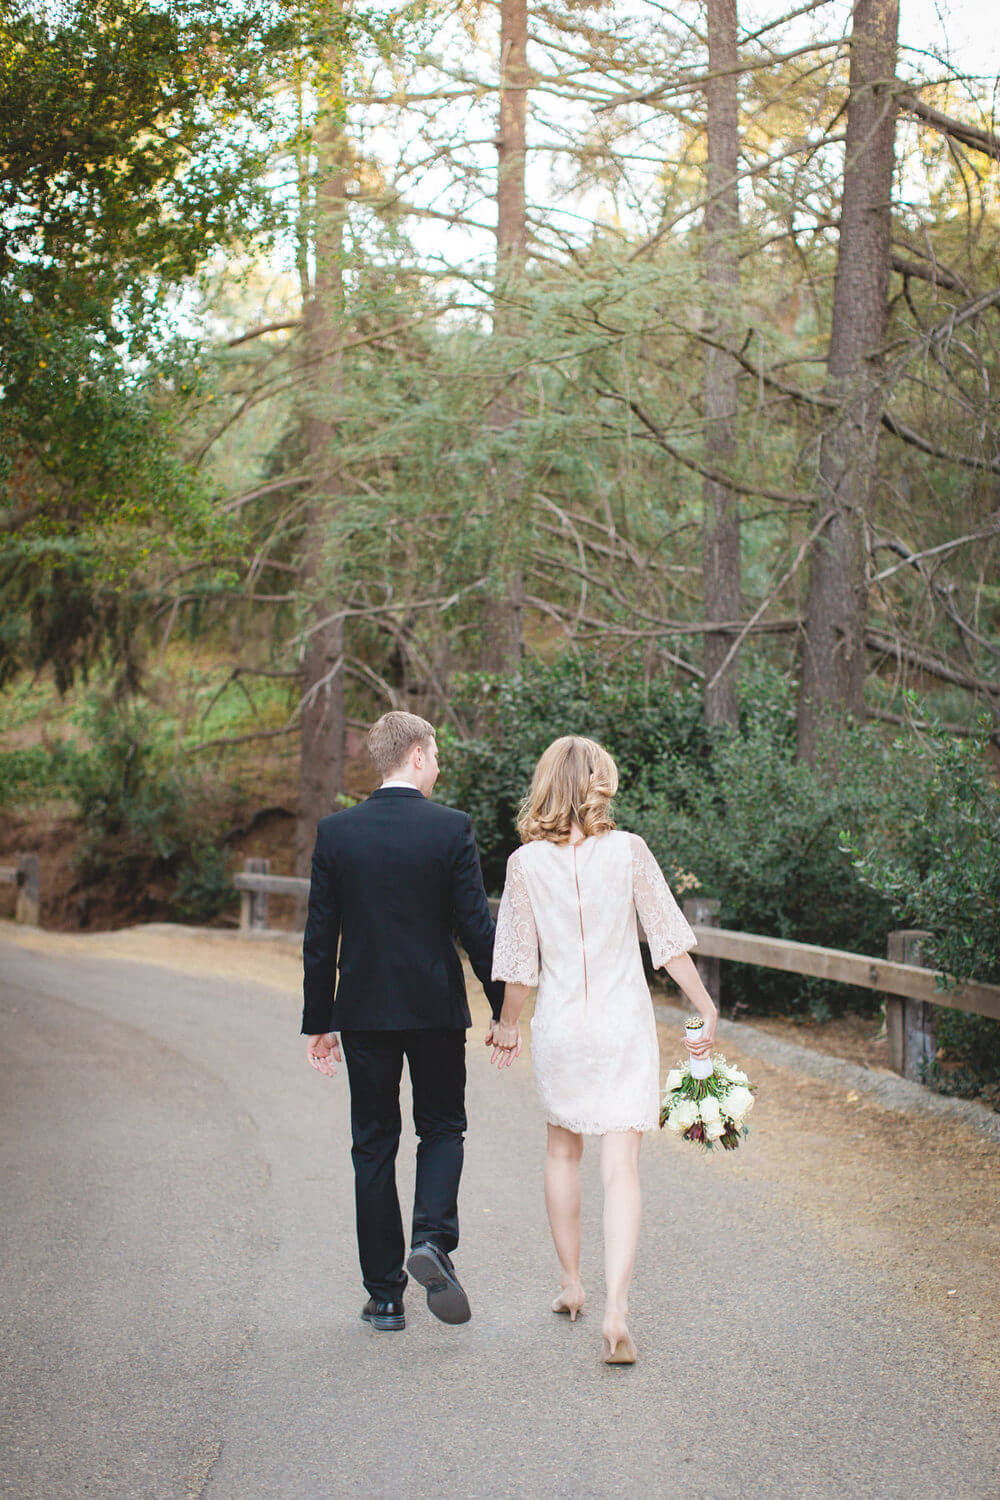 the-light-and-glass-wedding-engagement-photography-20151218-041.jpg